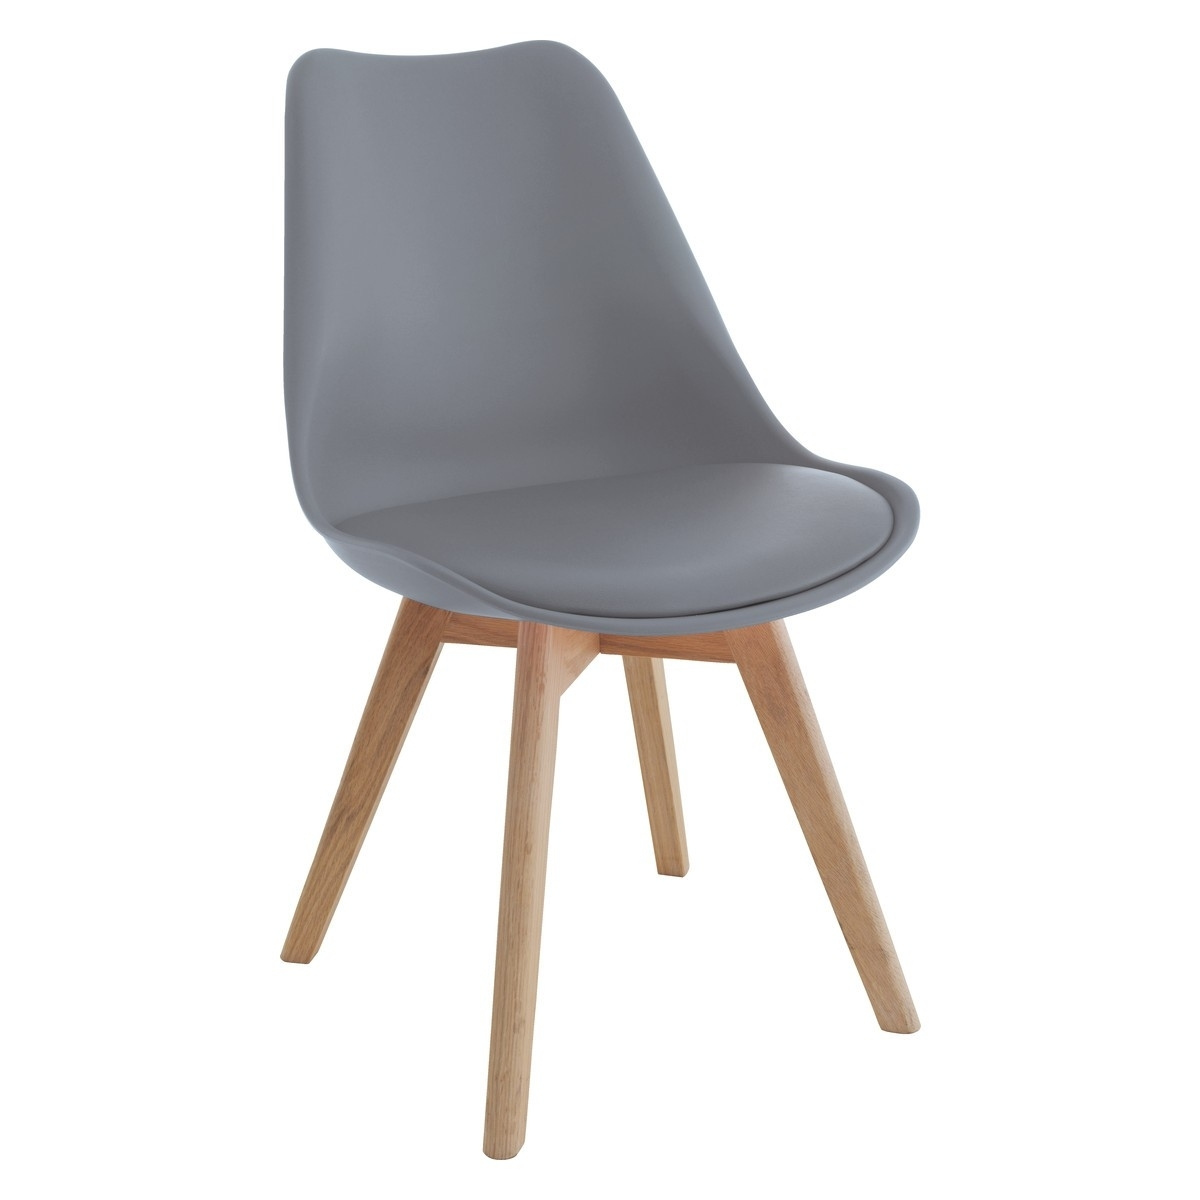 Grey Dining Chairs Intended For Preferred Jerry Grey Dining Chair With Solid Oak Legs (#6 of 20)